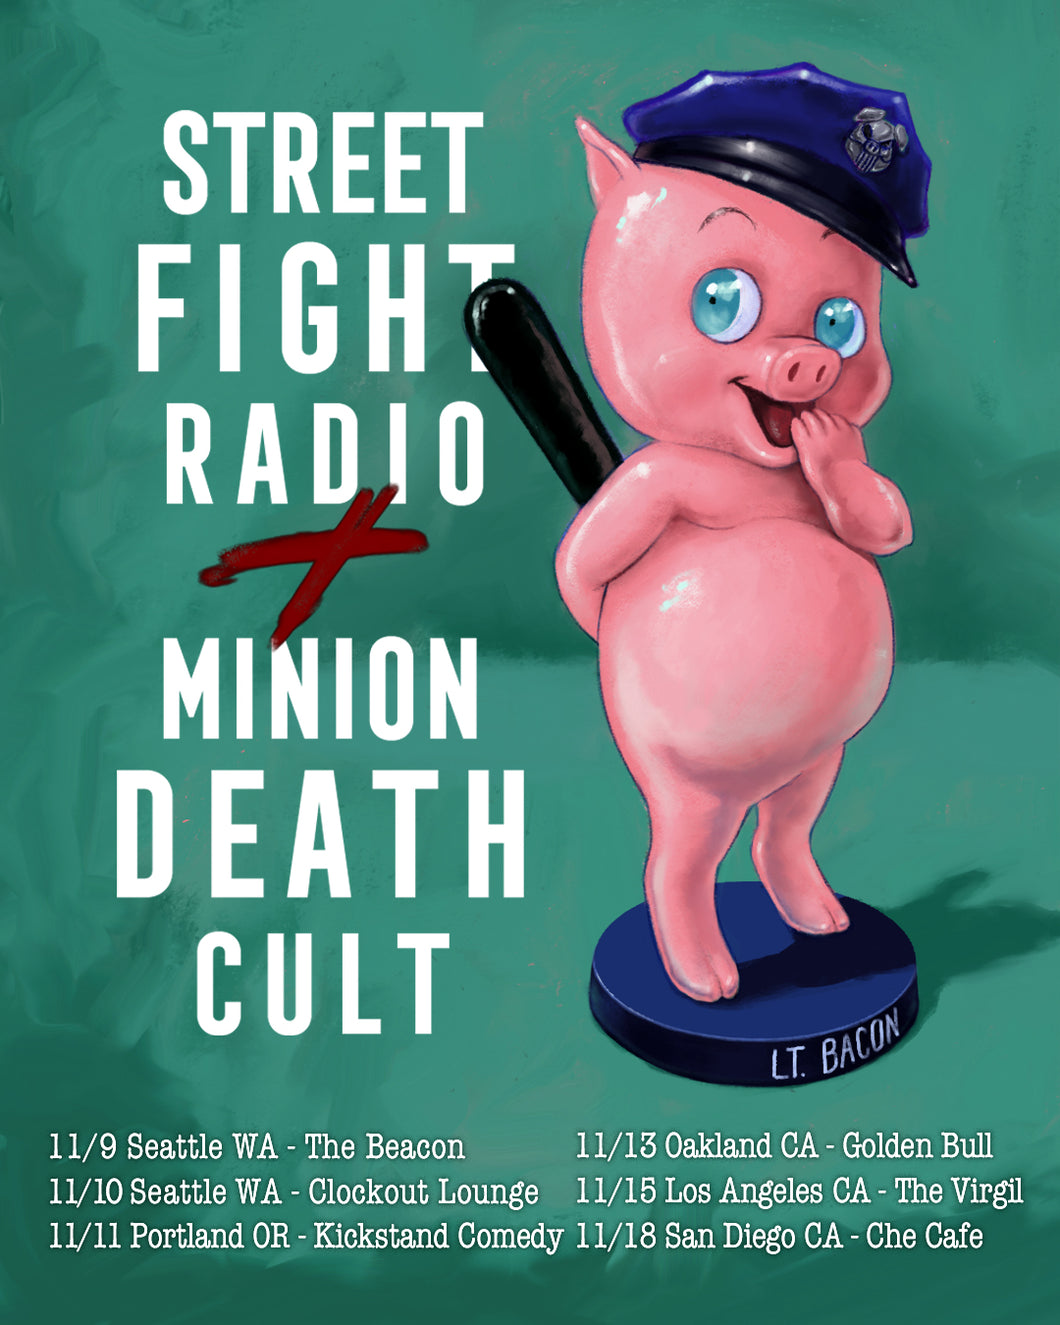 Street Fight Radio x Minion Death Cult and POD Kast @ Kickstand Comedy - Portland,OR 11/11